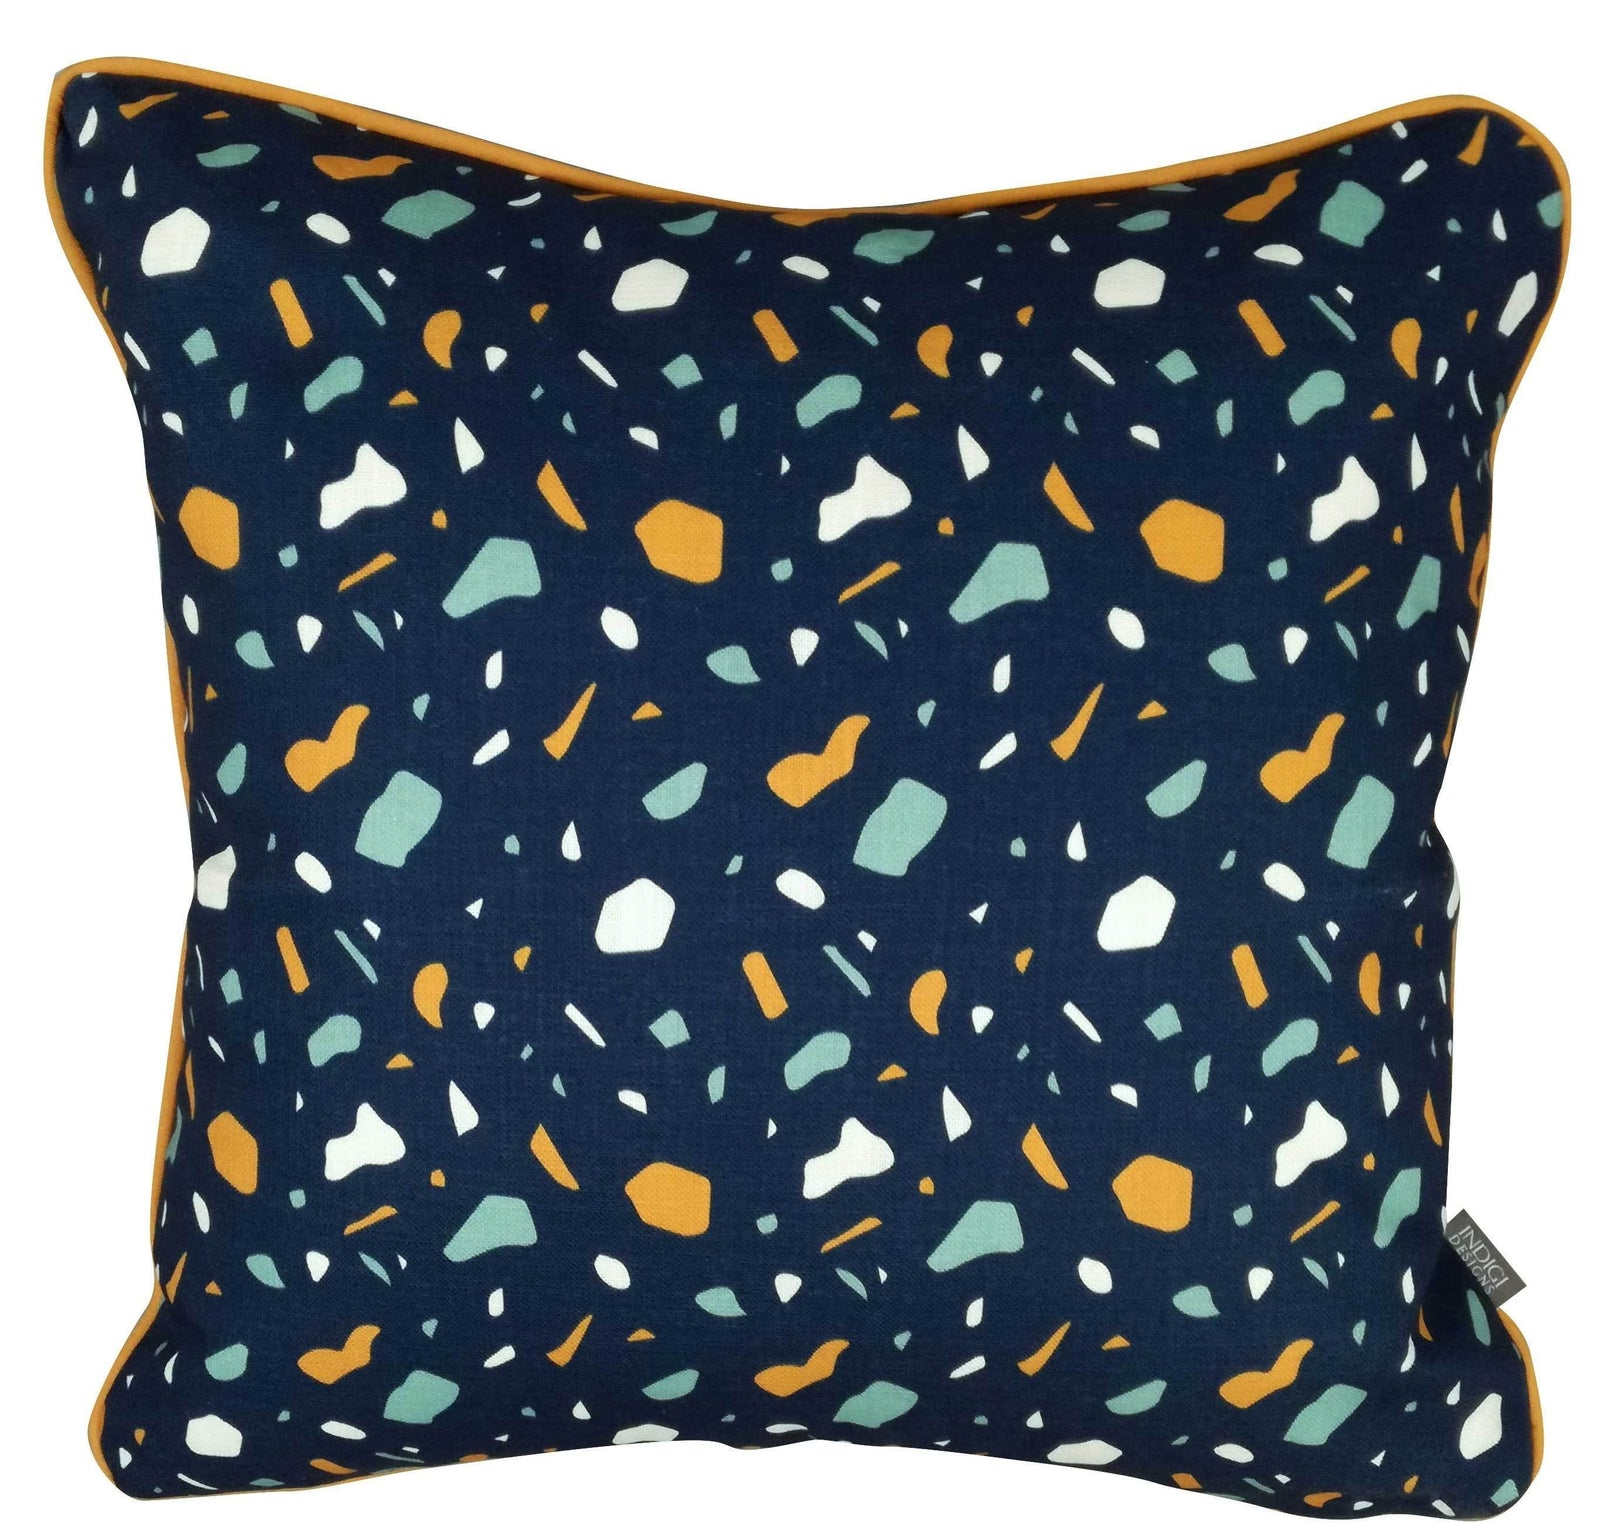 Digital Terrazzo Navy Cushion Cover with Piping